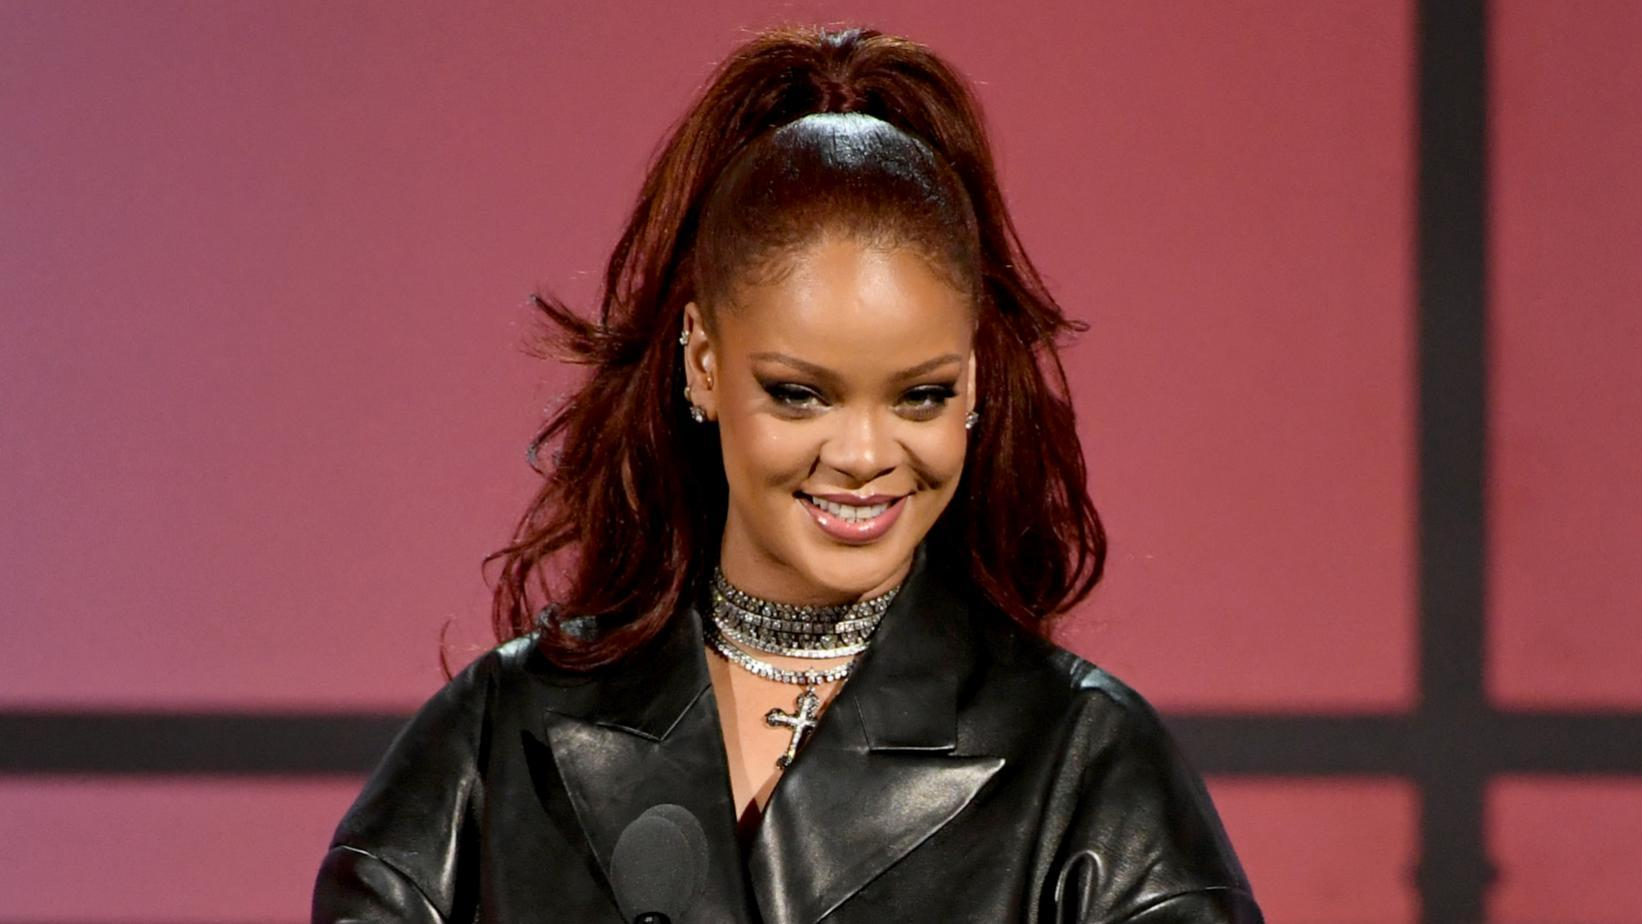 Diddy Sparks Rihanna Dating Rumors With This Photo